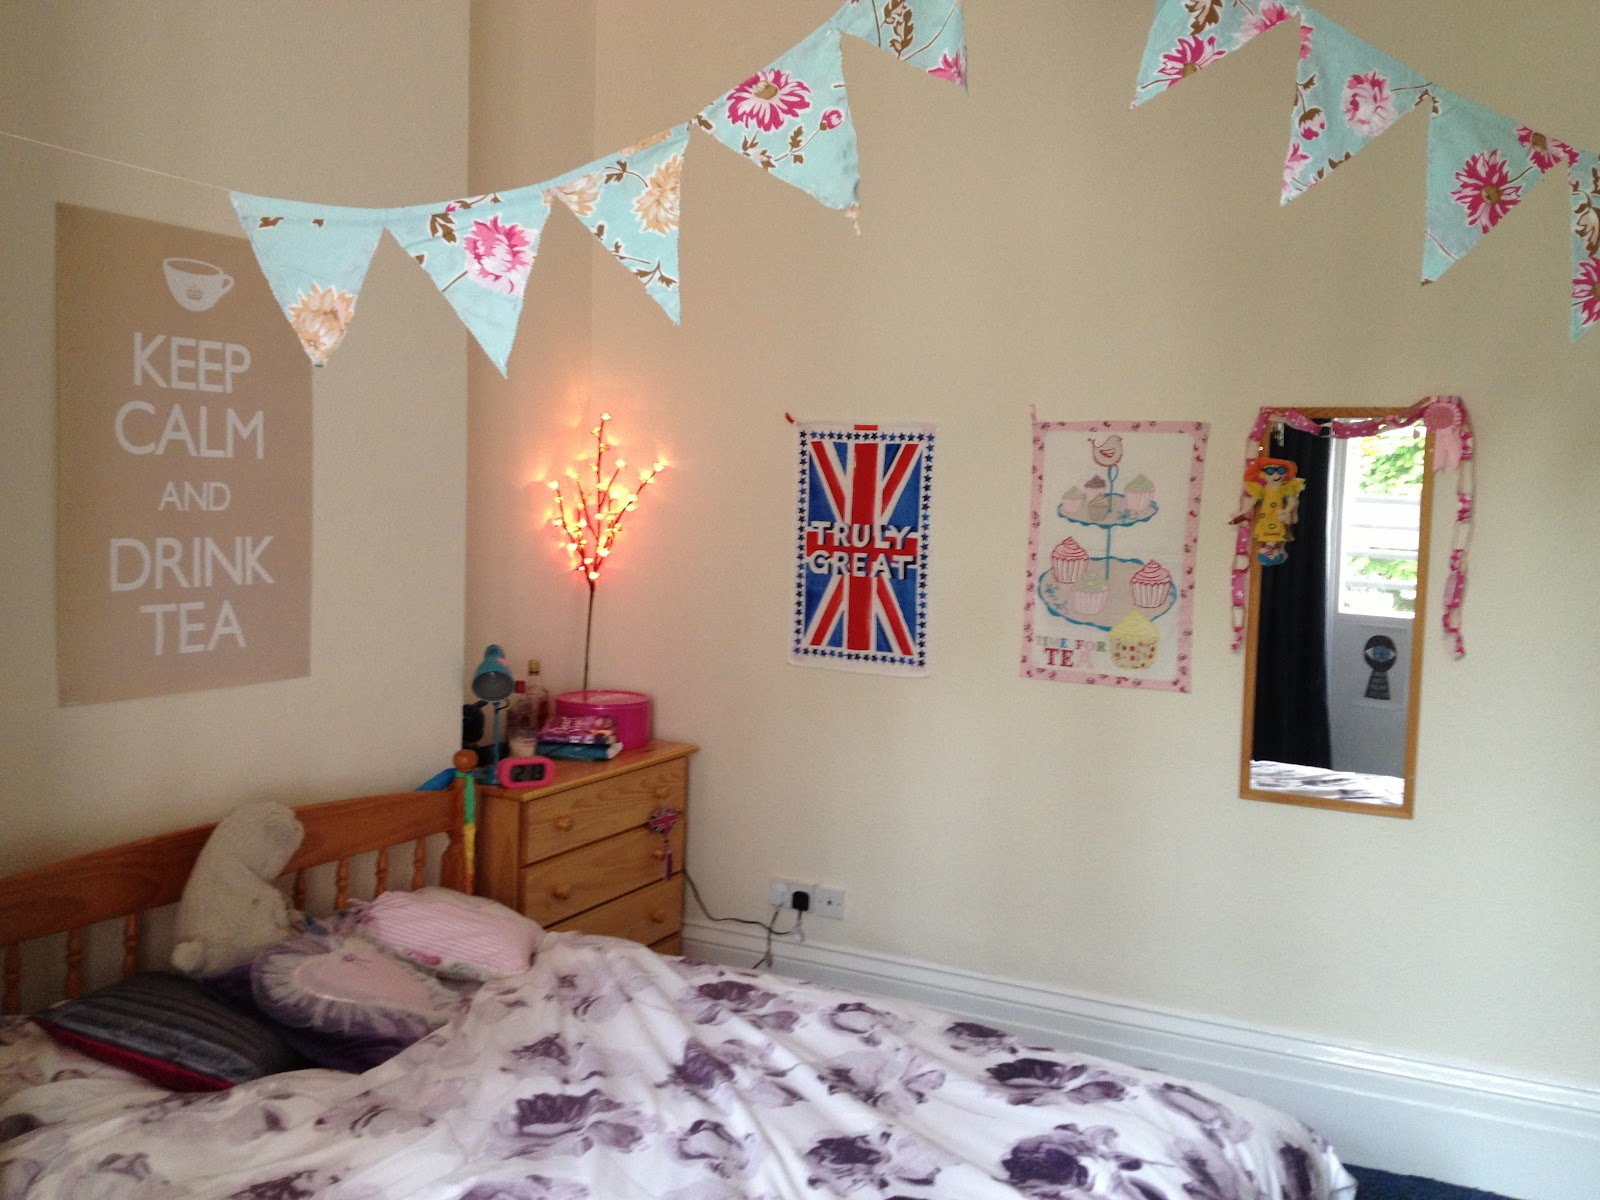 The Twenty Best Ways To Decorate Your Student Room At Uni